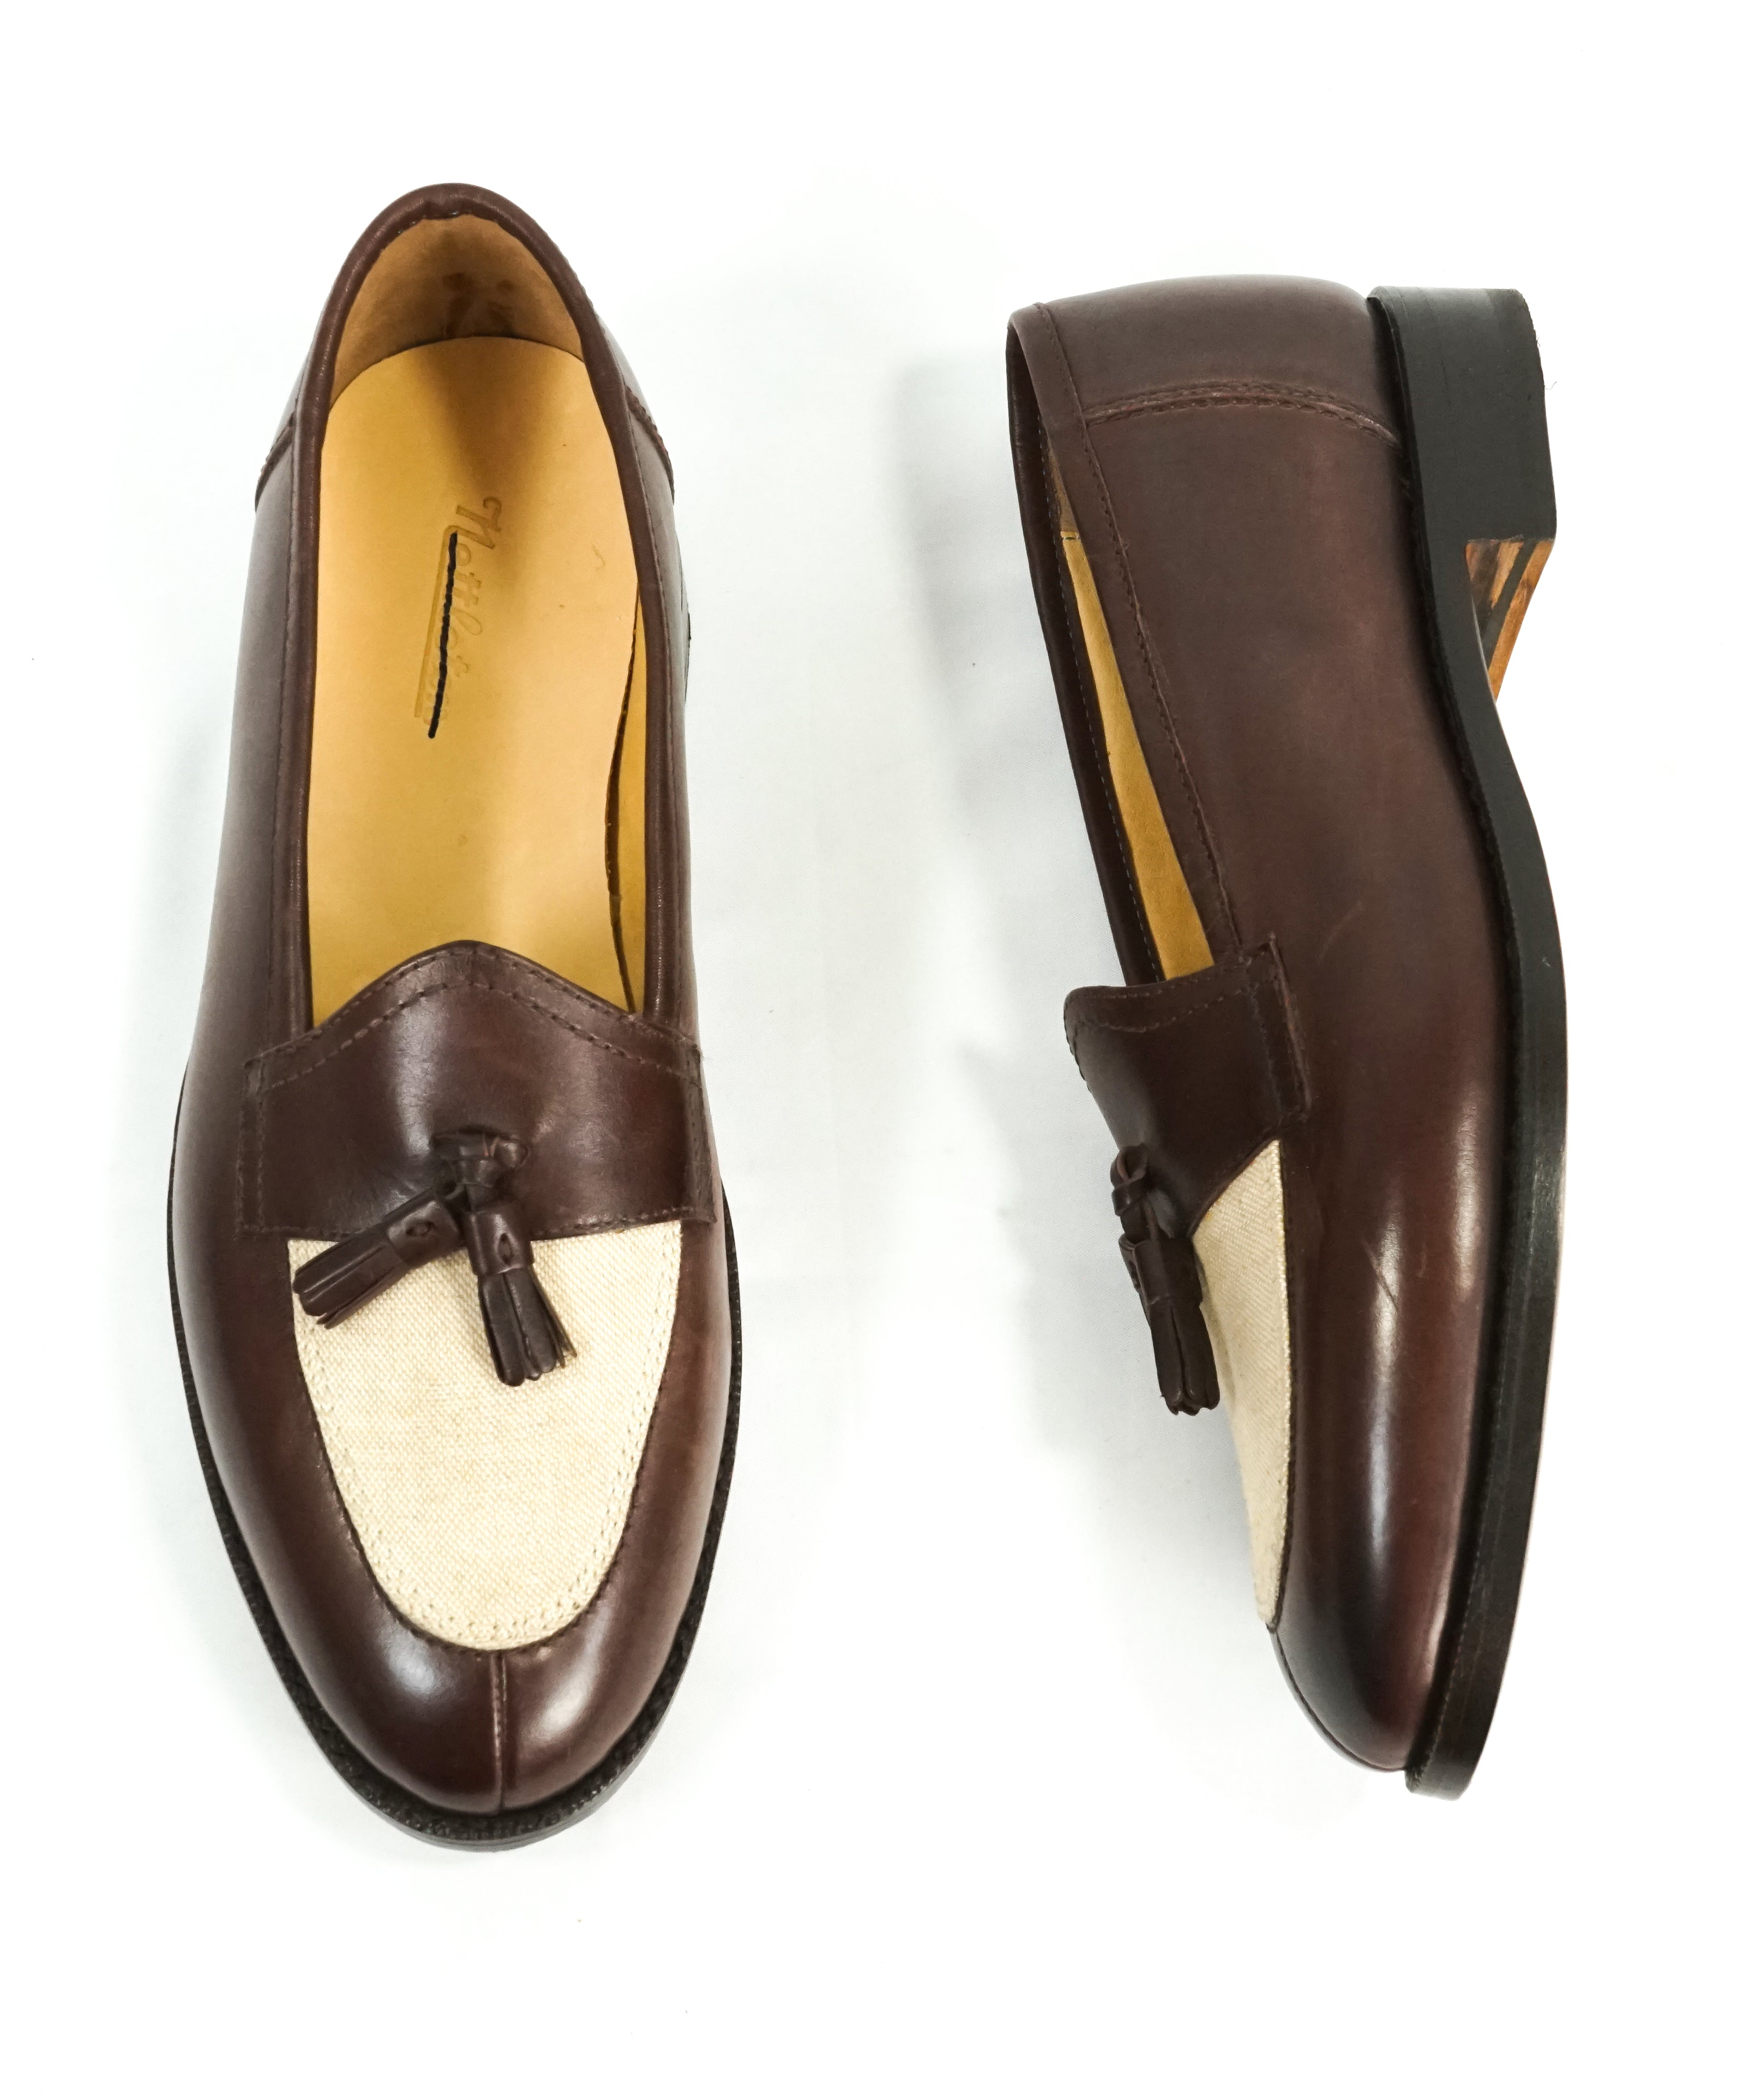 "NETTLETON - ""King Street"" Leather Tassel Loafers Brown Hand Made In England - 9"